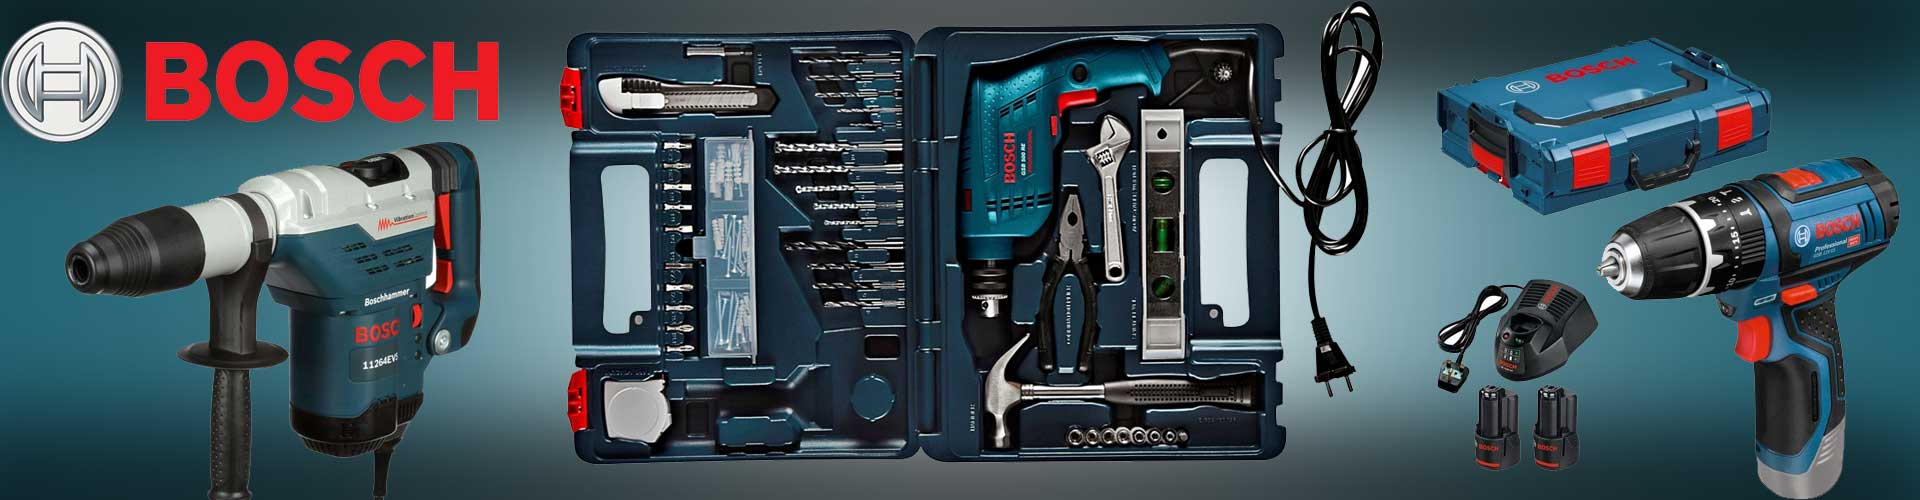 Bosch Power Tools Amp Hand Tools Tools And Spares Corporation